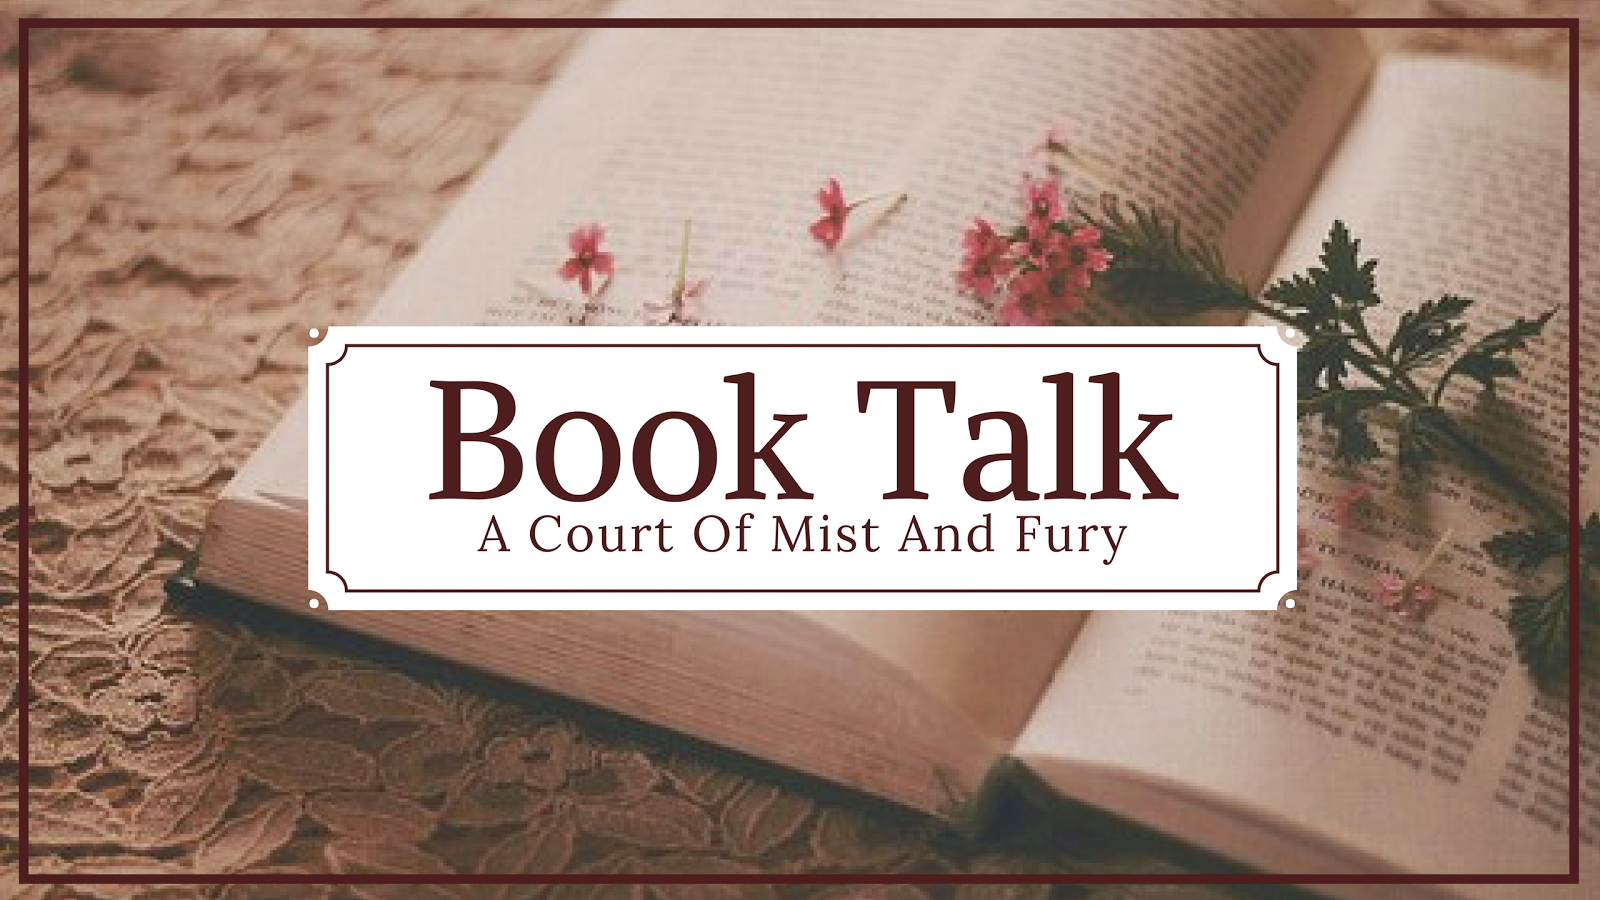 a court of mist and fury pdf free